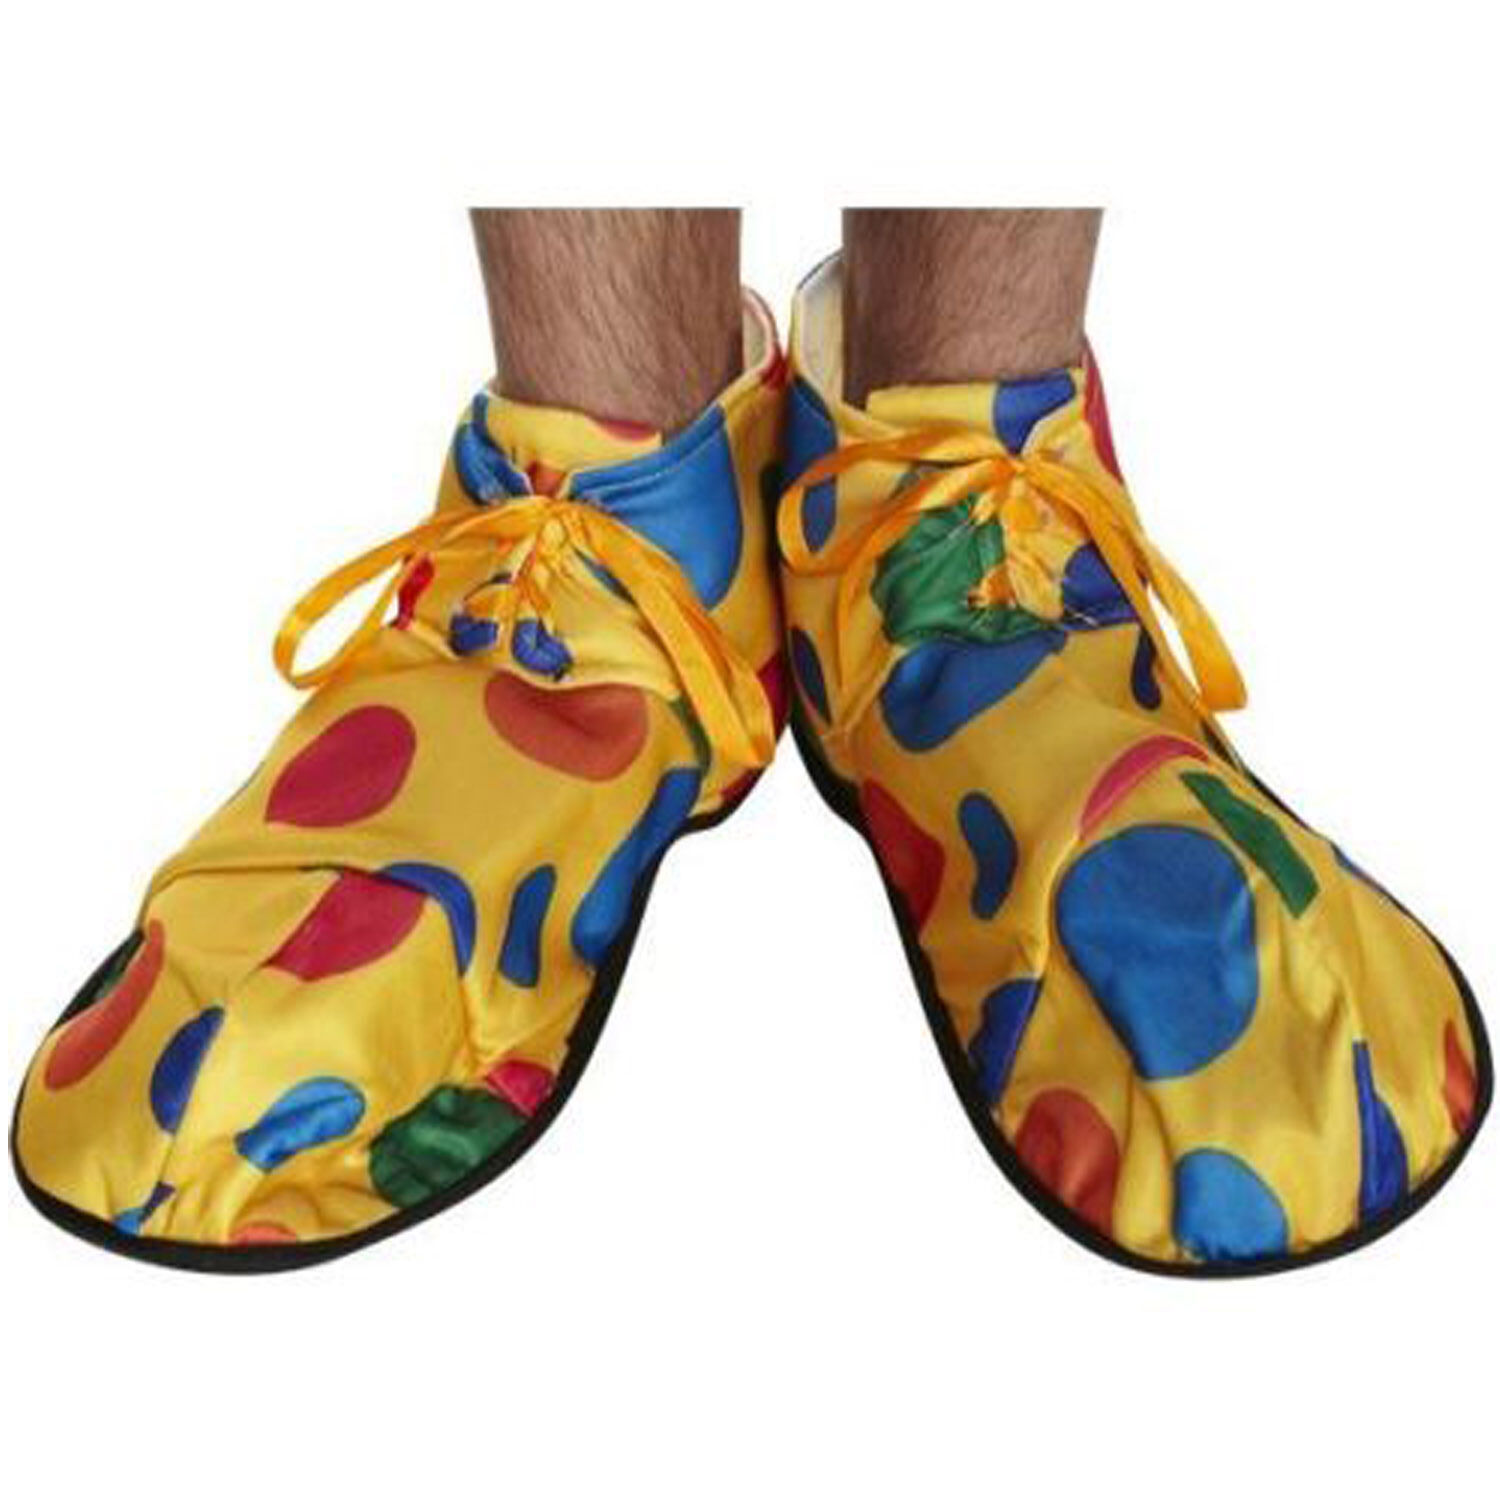 Clown Shoes Costume Fancy Dress Adult Kids Circus Party Accessory Hot Unisex